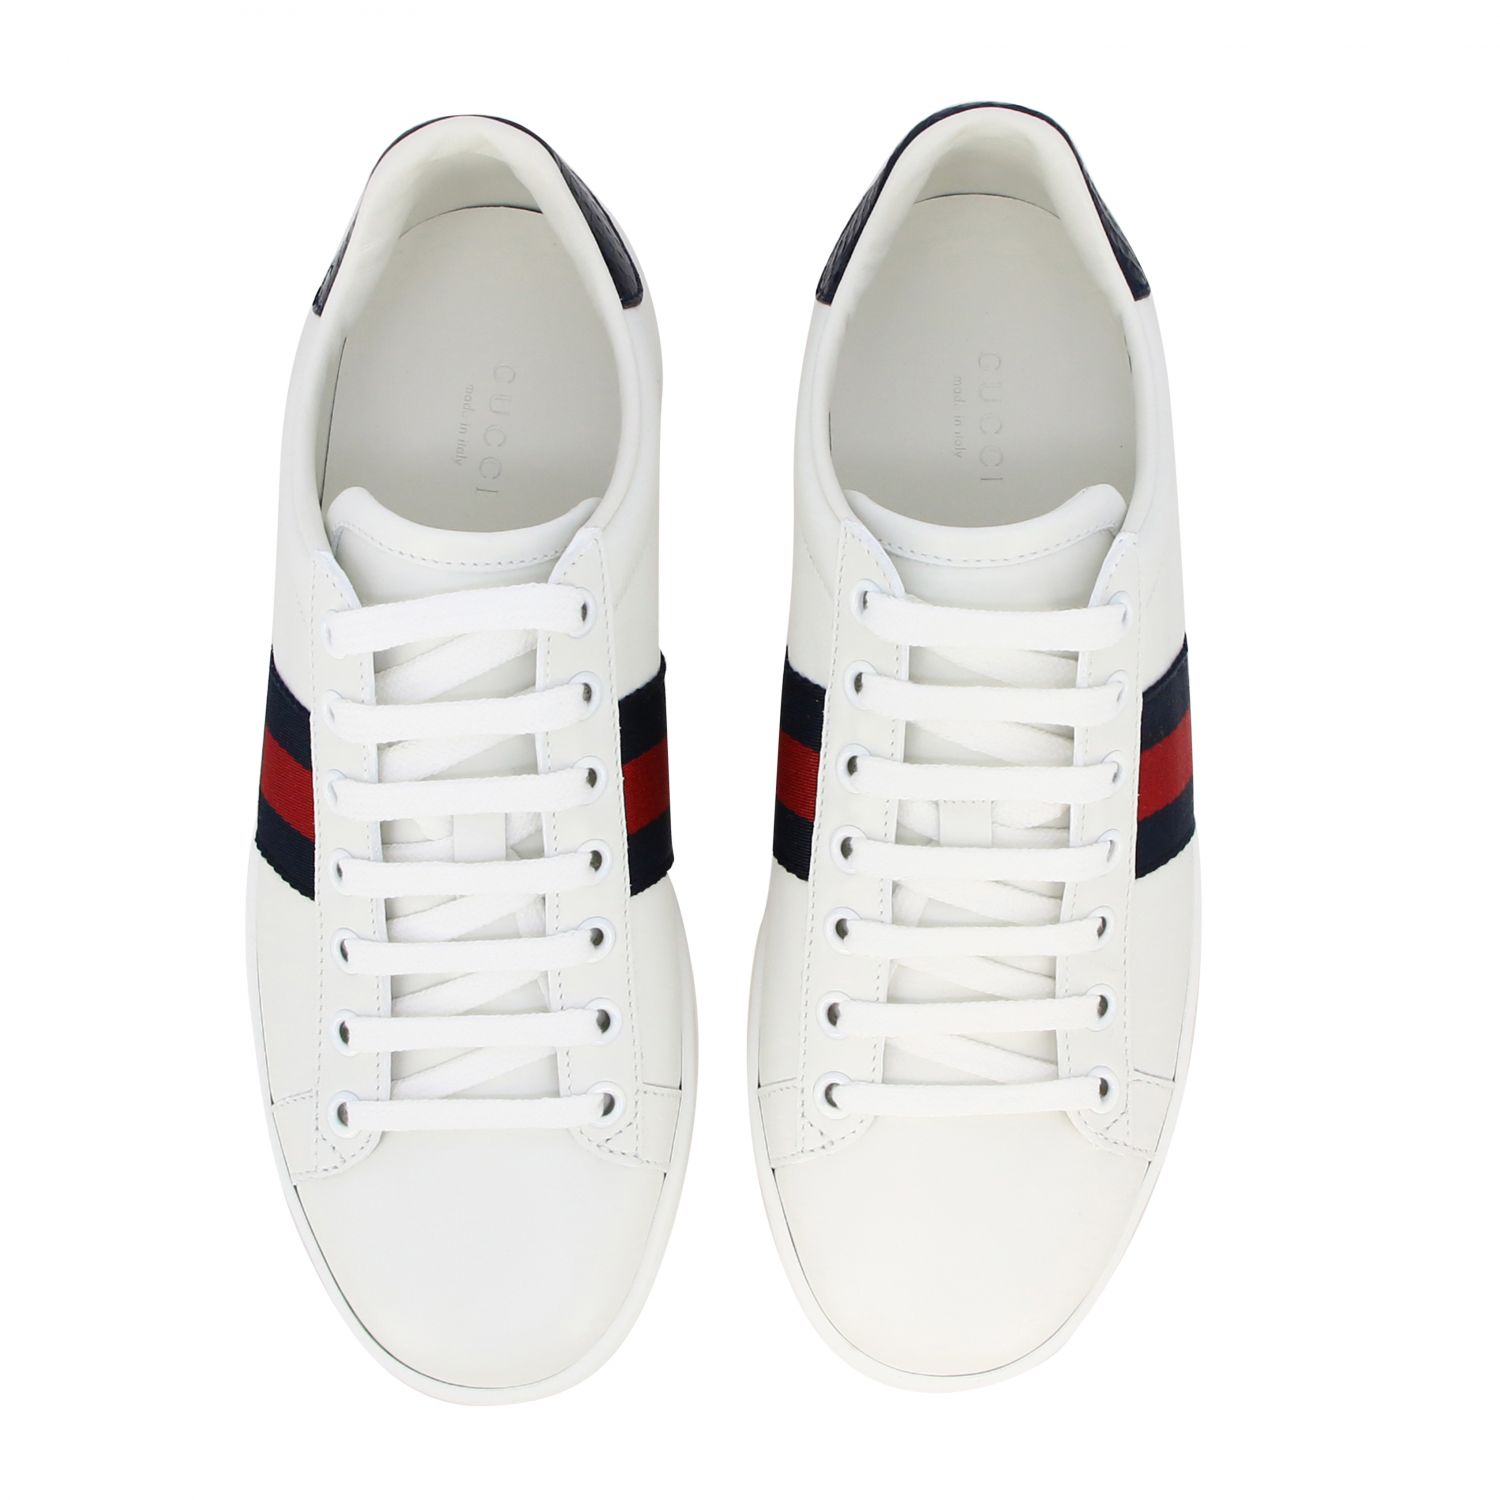 Sneakers New Ace Gucci in pelle con fasce Web bianco 3